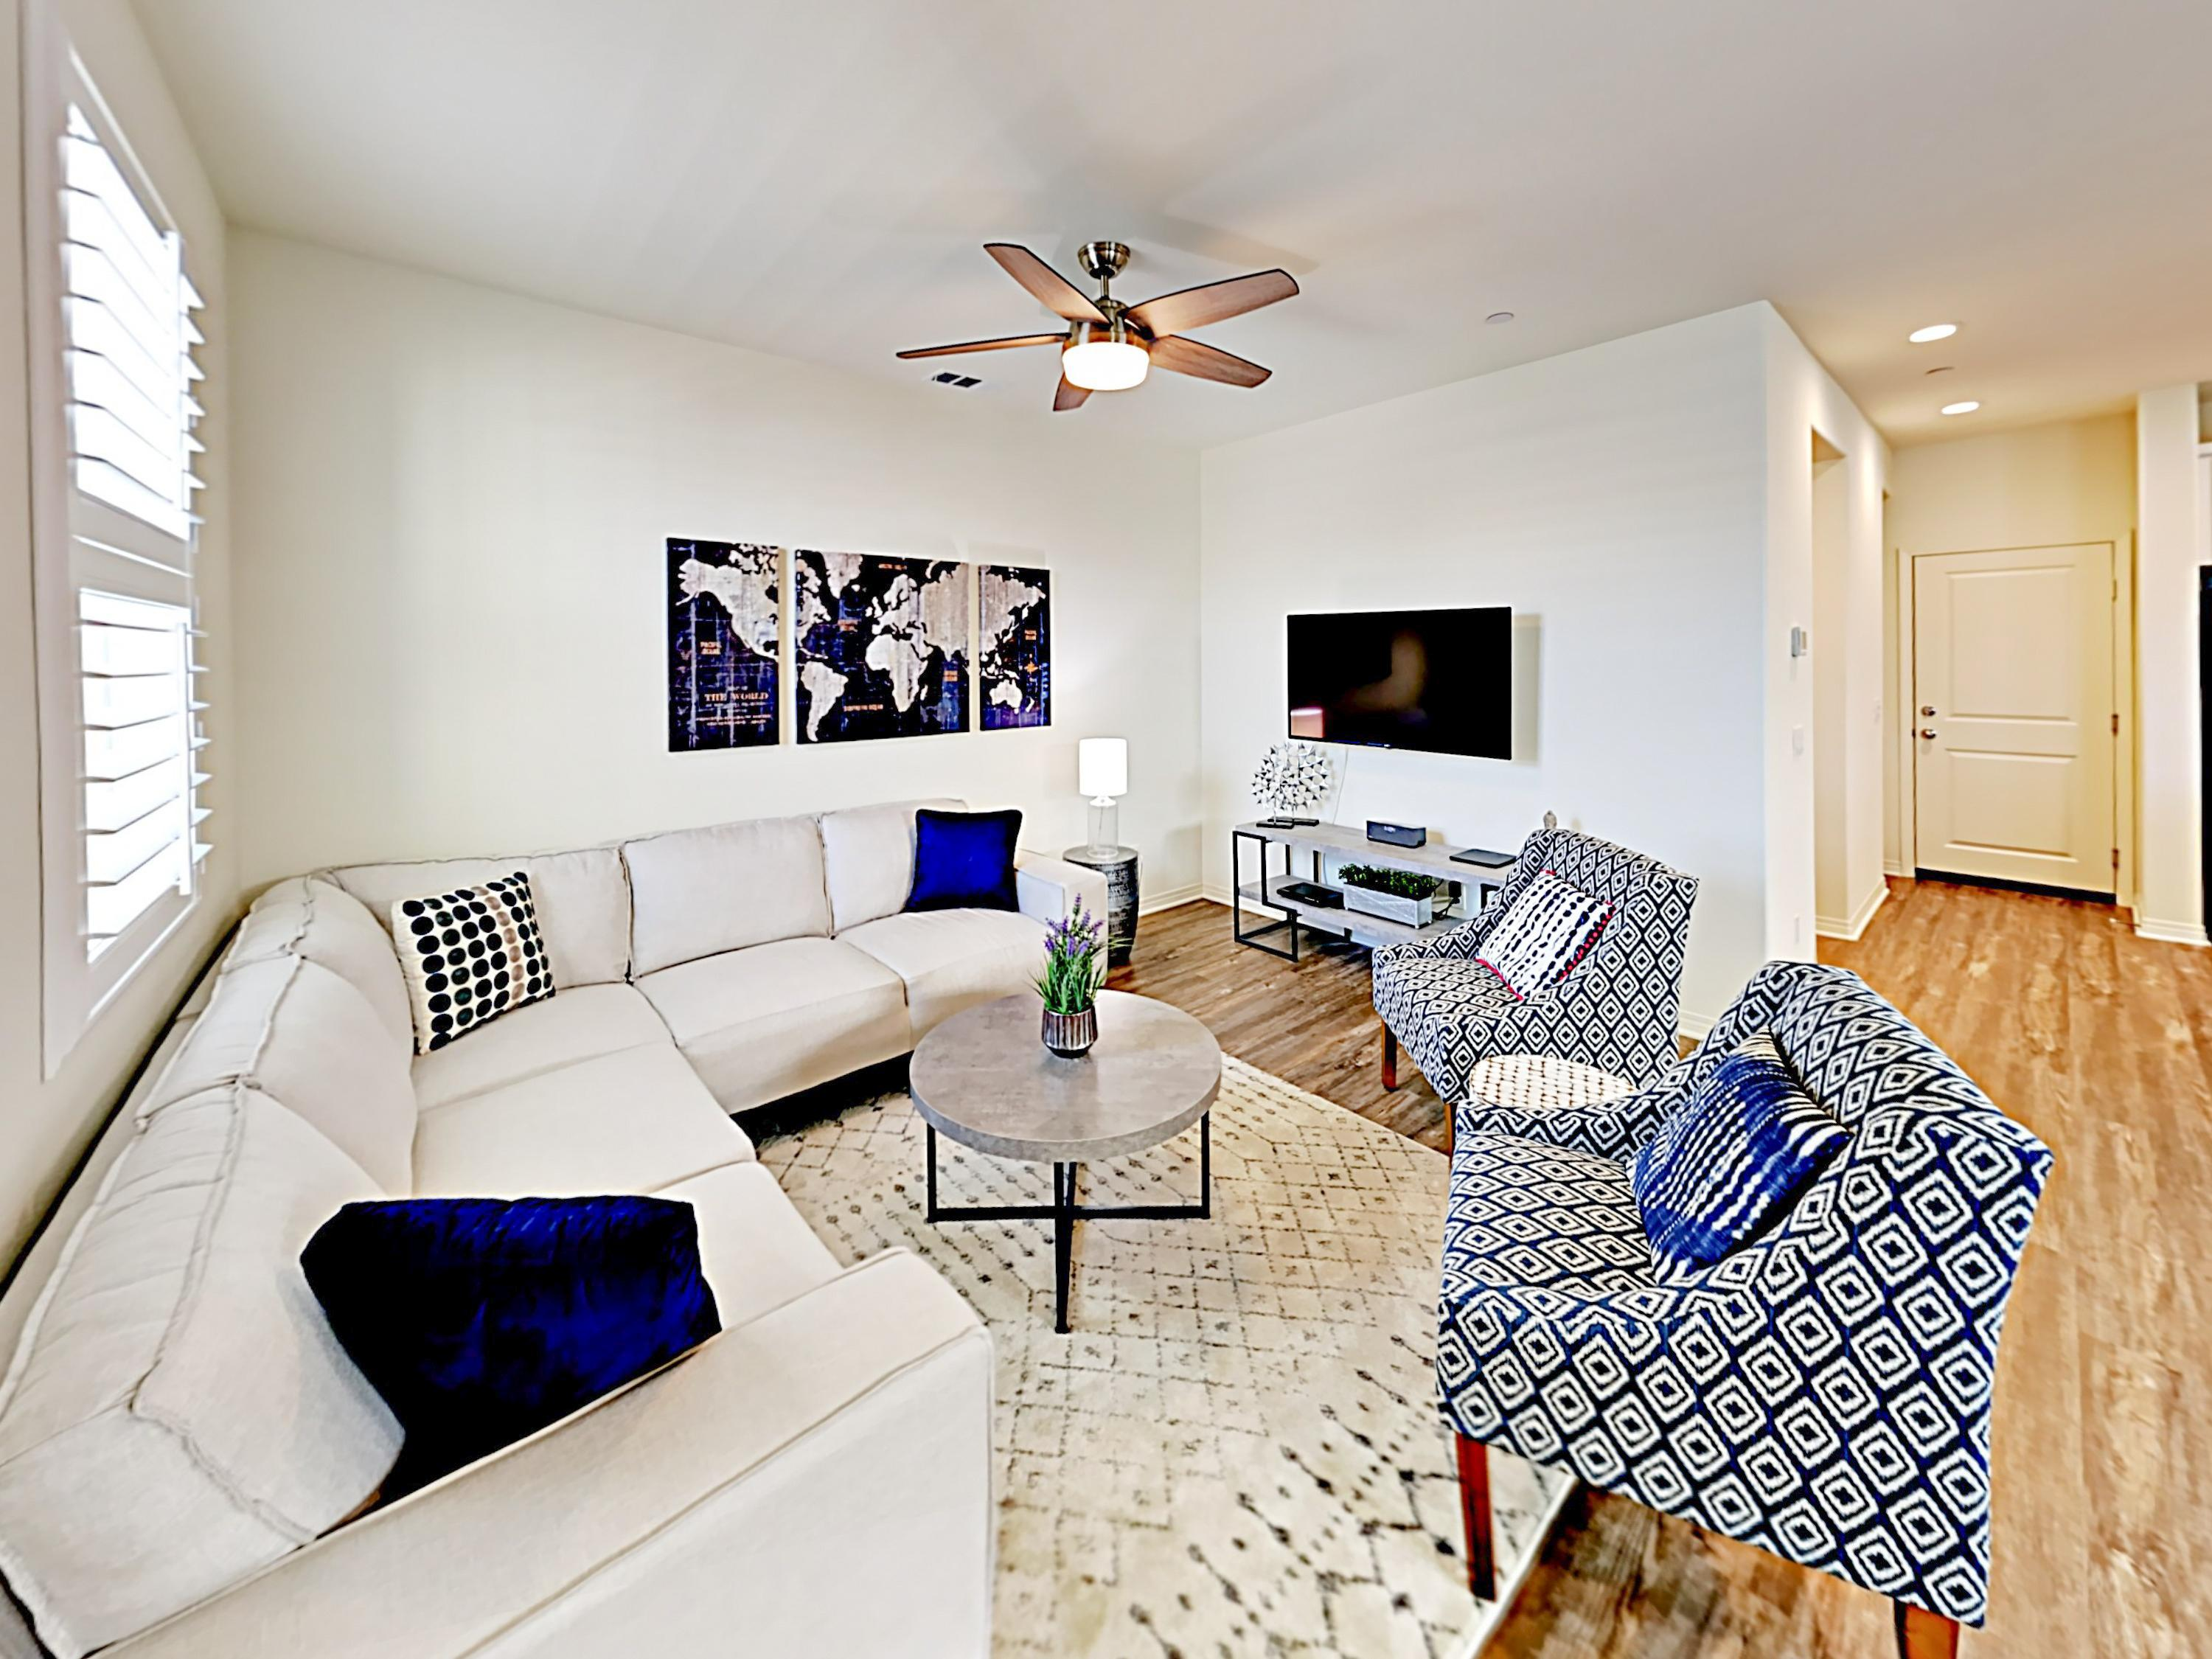 Welcome to Imperial Beach! This home is professionally managed by TurnKey Vacation Rentals.